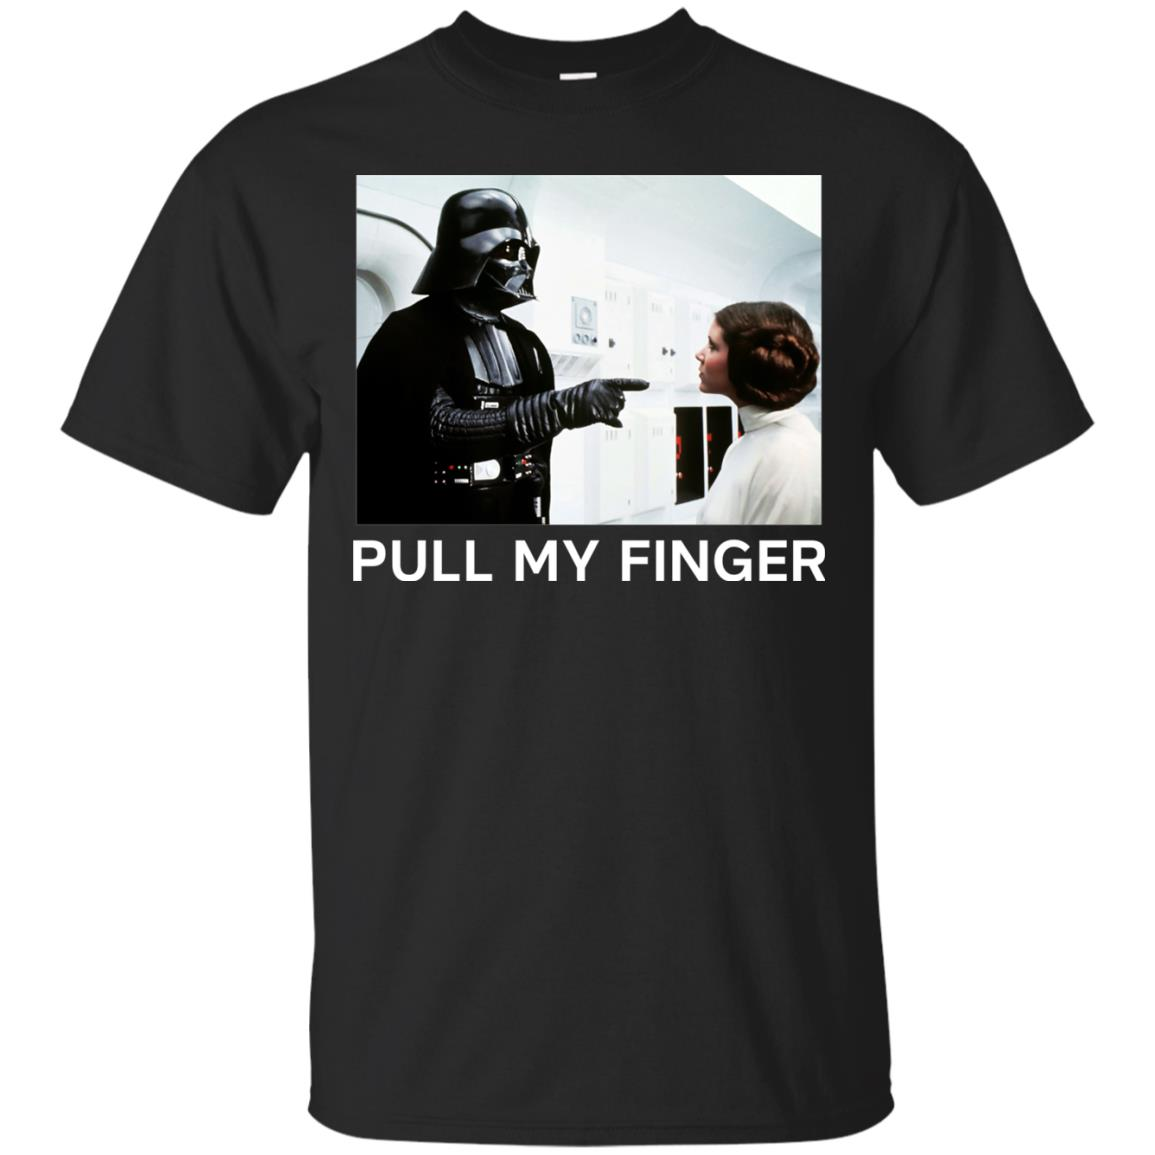 image 530 - Star Wars Darth Vader & Princess Leia: Pull My Finger shirt